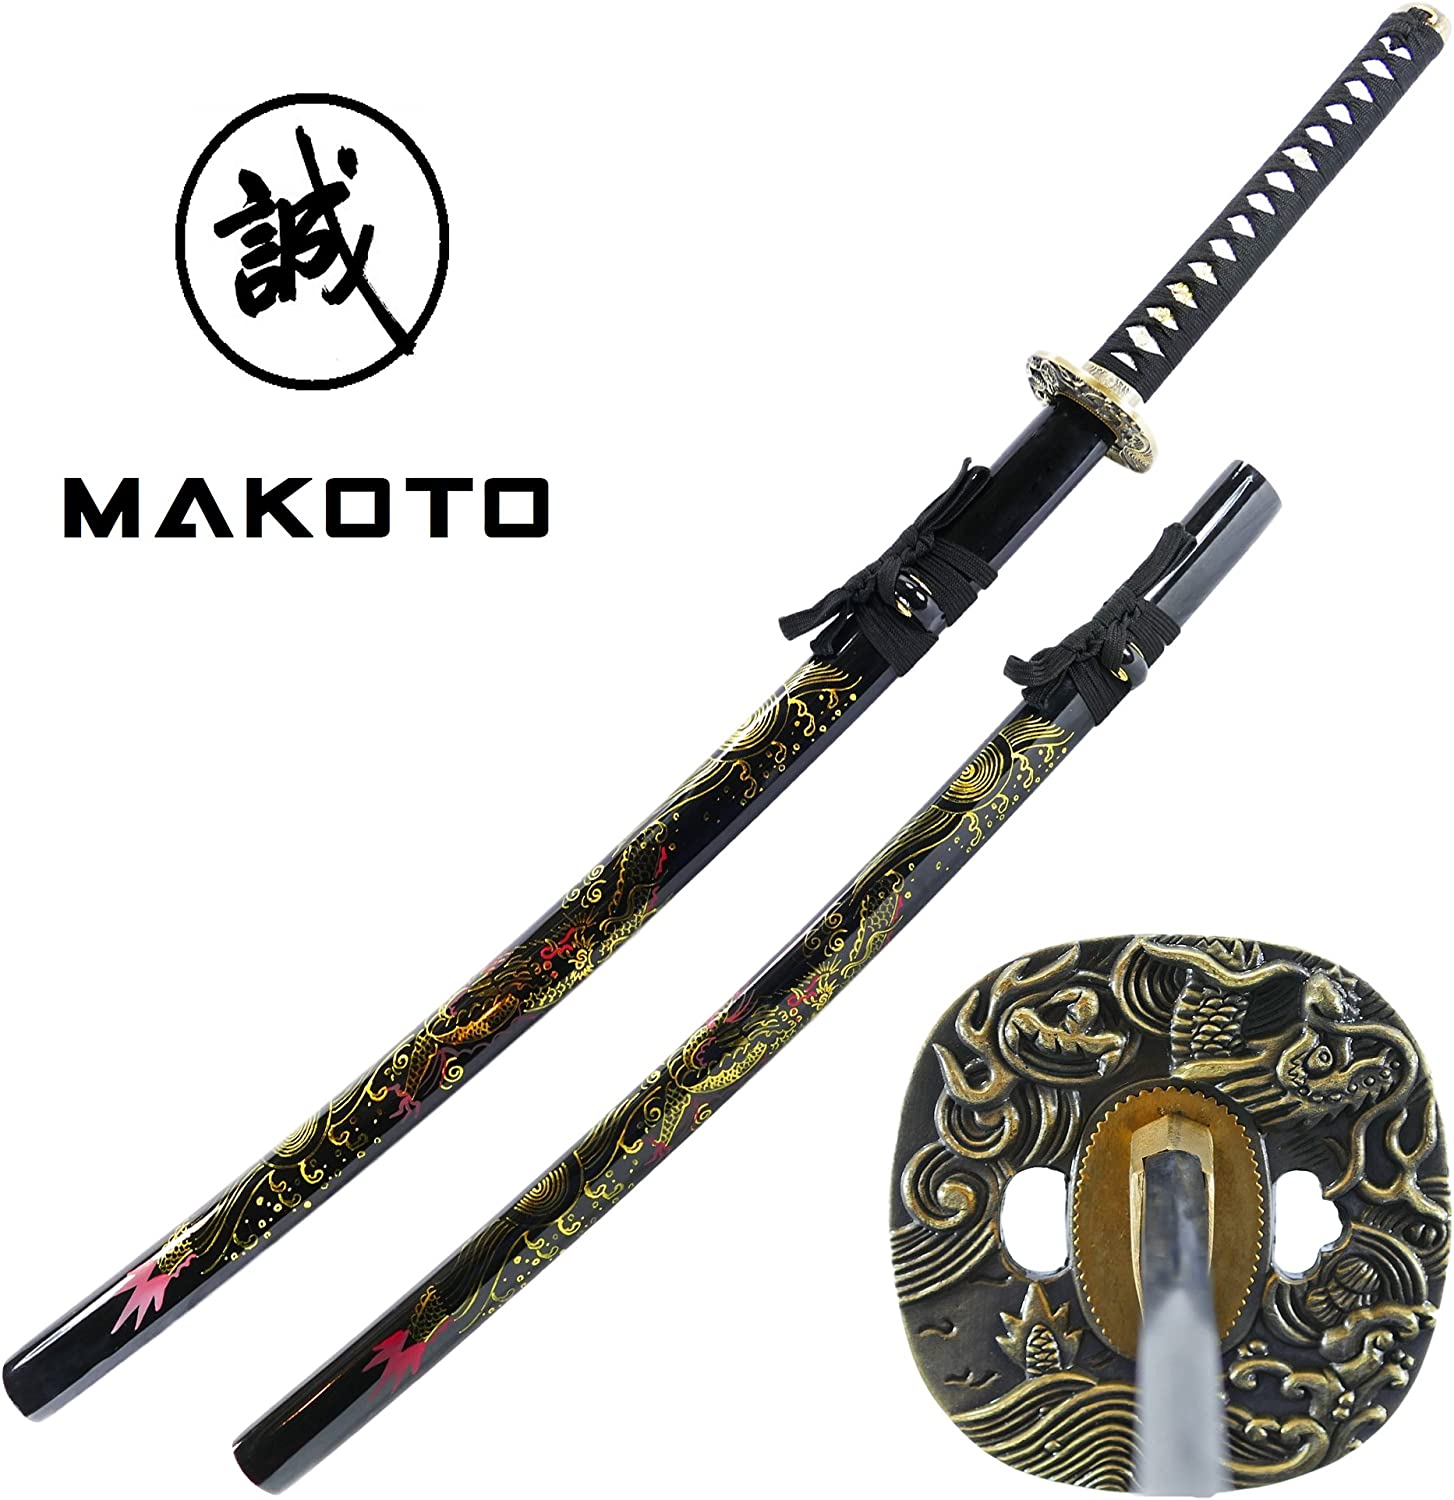 MAKOTO Hand Forged Razor 爆売りセール開催中 Sharp Painted OUTLET SALE with Katana Sword Sc